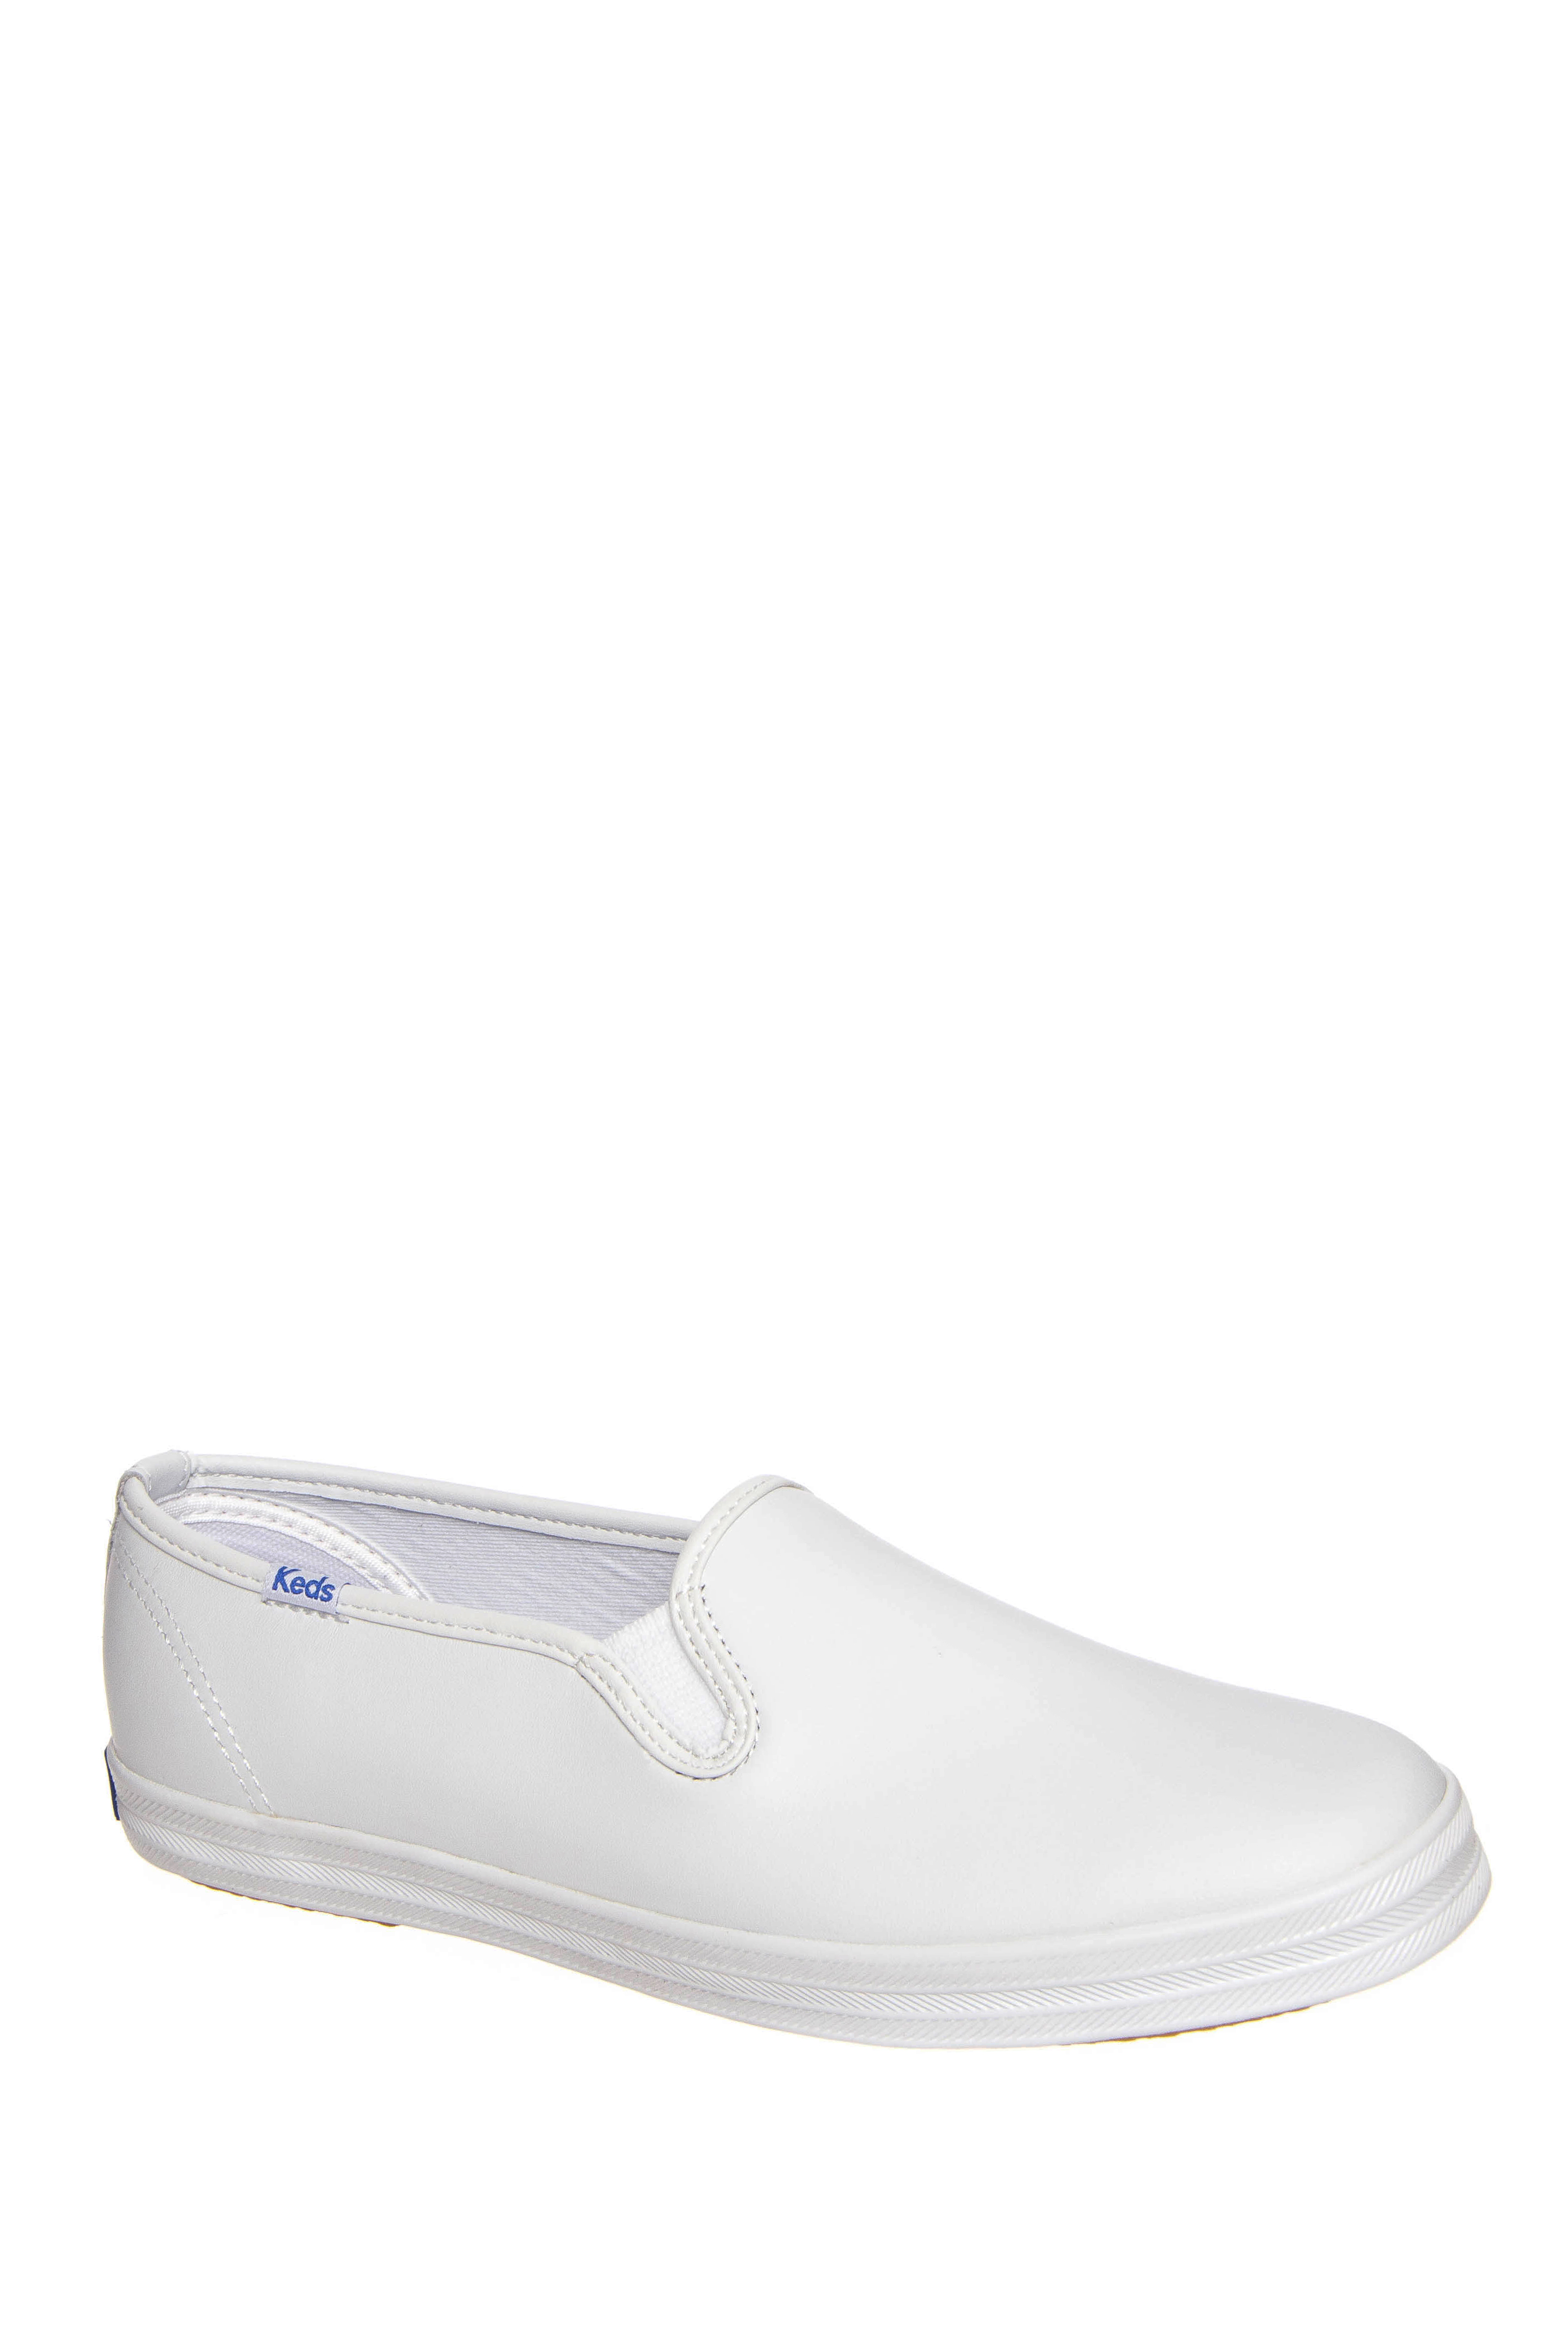 Keds Champion Slip-On Leather Sneakers - White